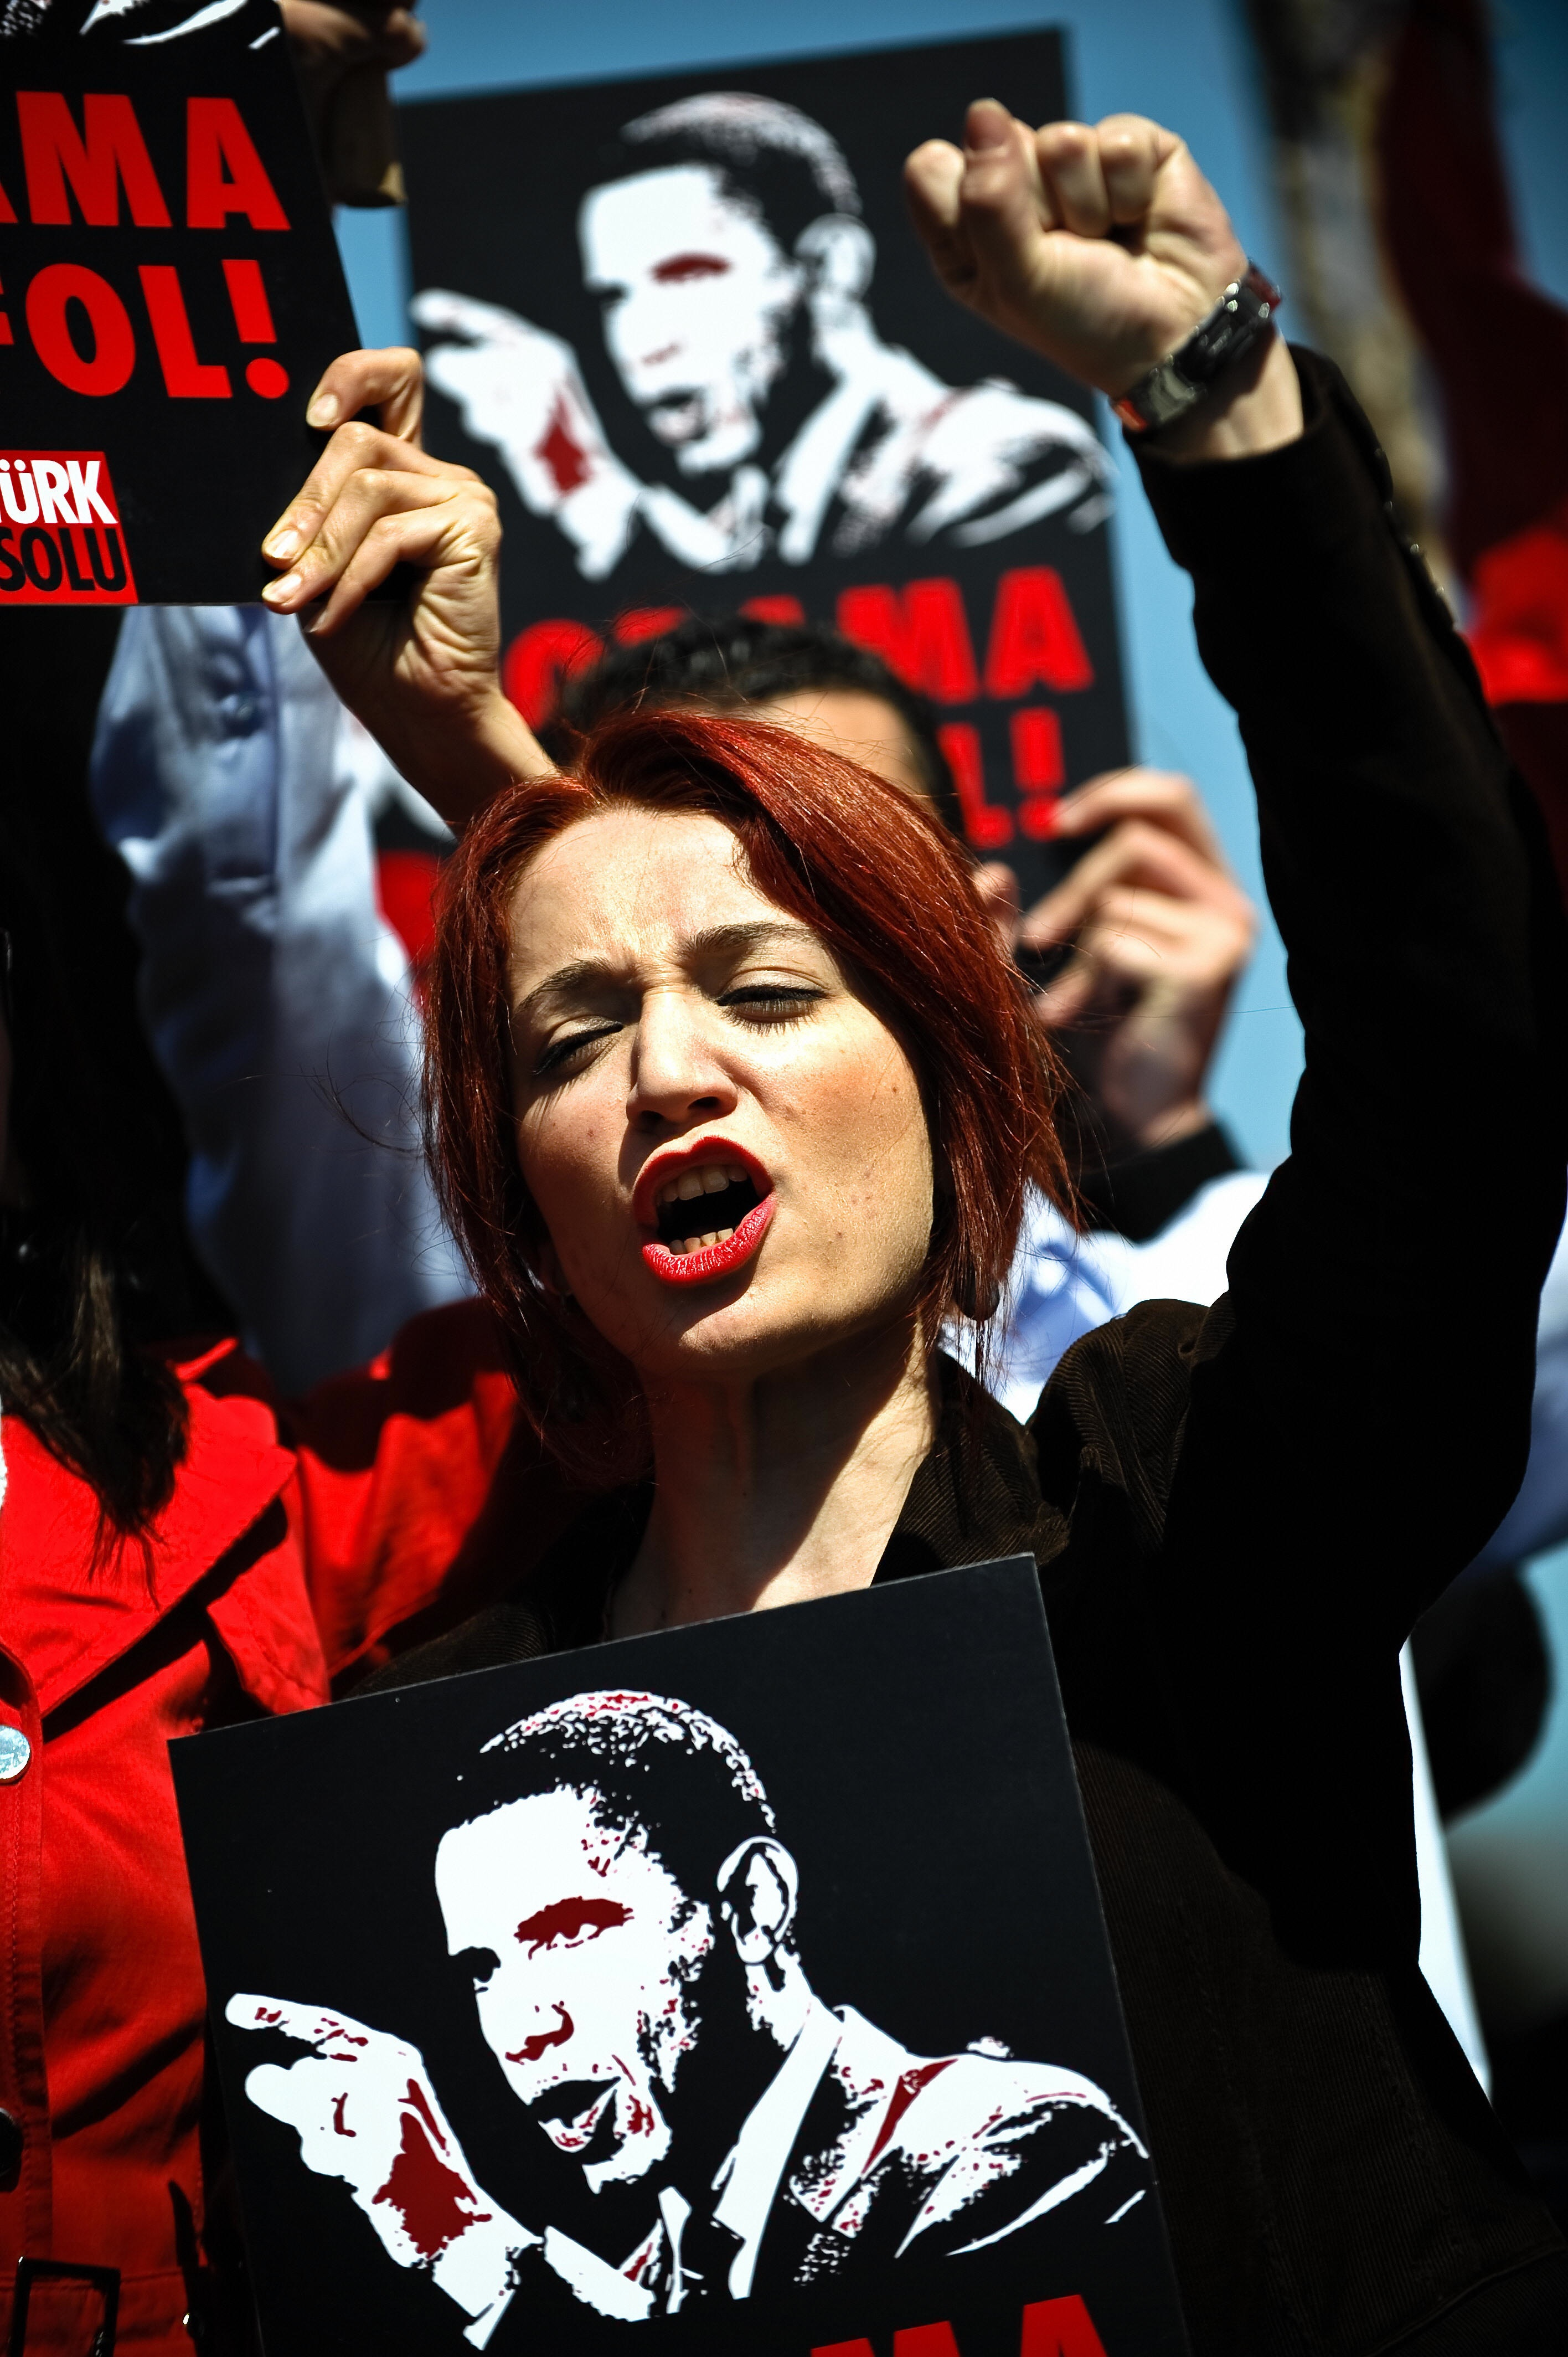 DIMITAR DILKOFF/AFP/Getty Images. A Turkish protestor shouts slogans and holds a banner reading 'Obama go home' during a demonstration against upcoming visit of US President Barack Obama in Istanbul on April 5, 2009.